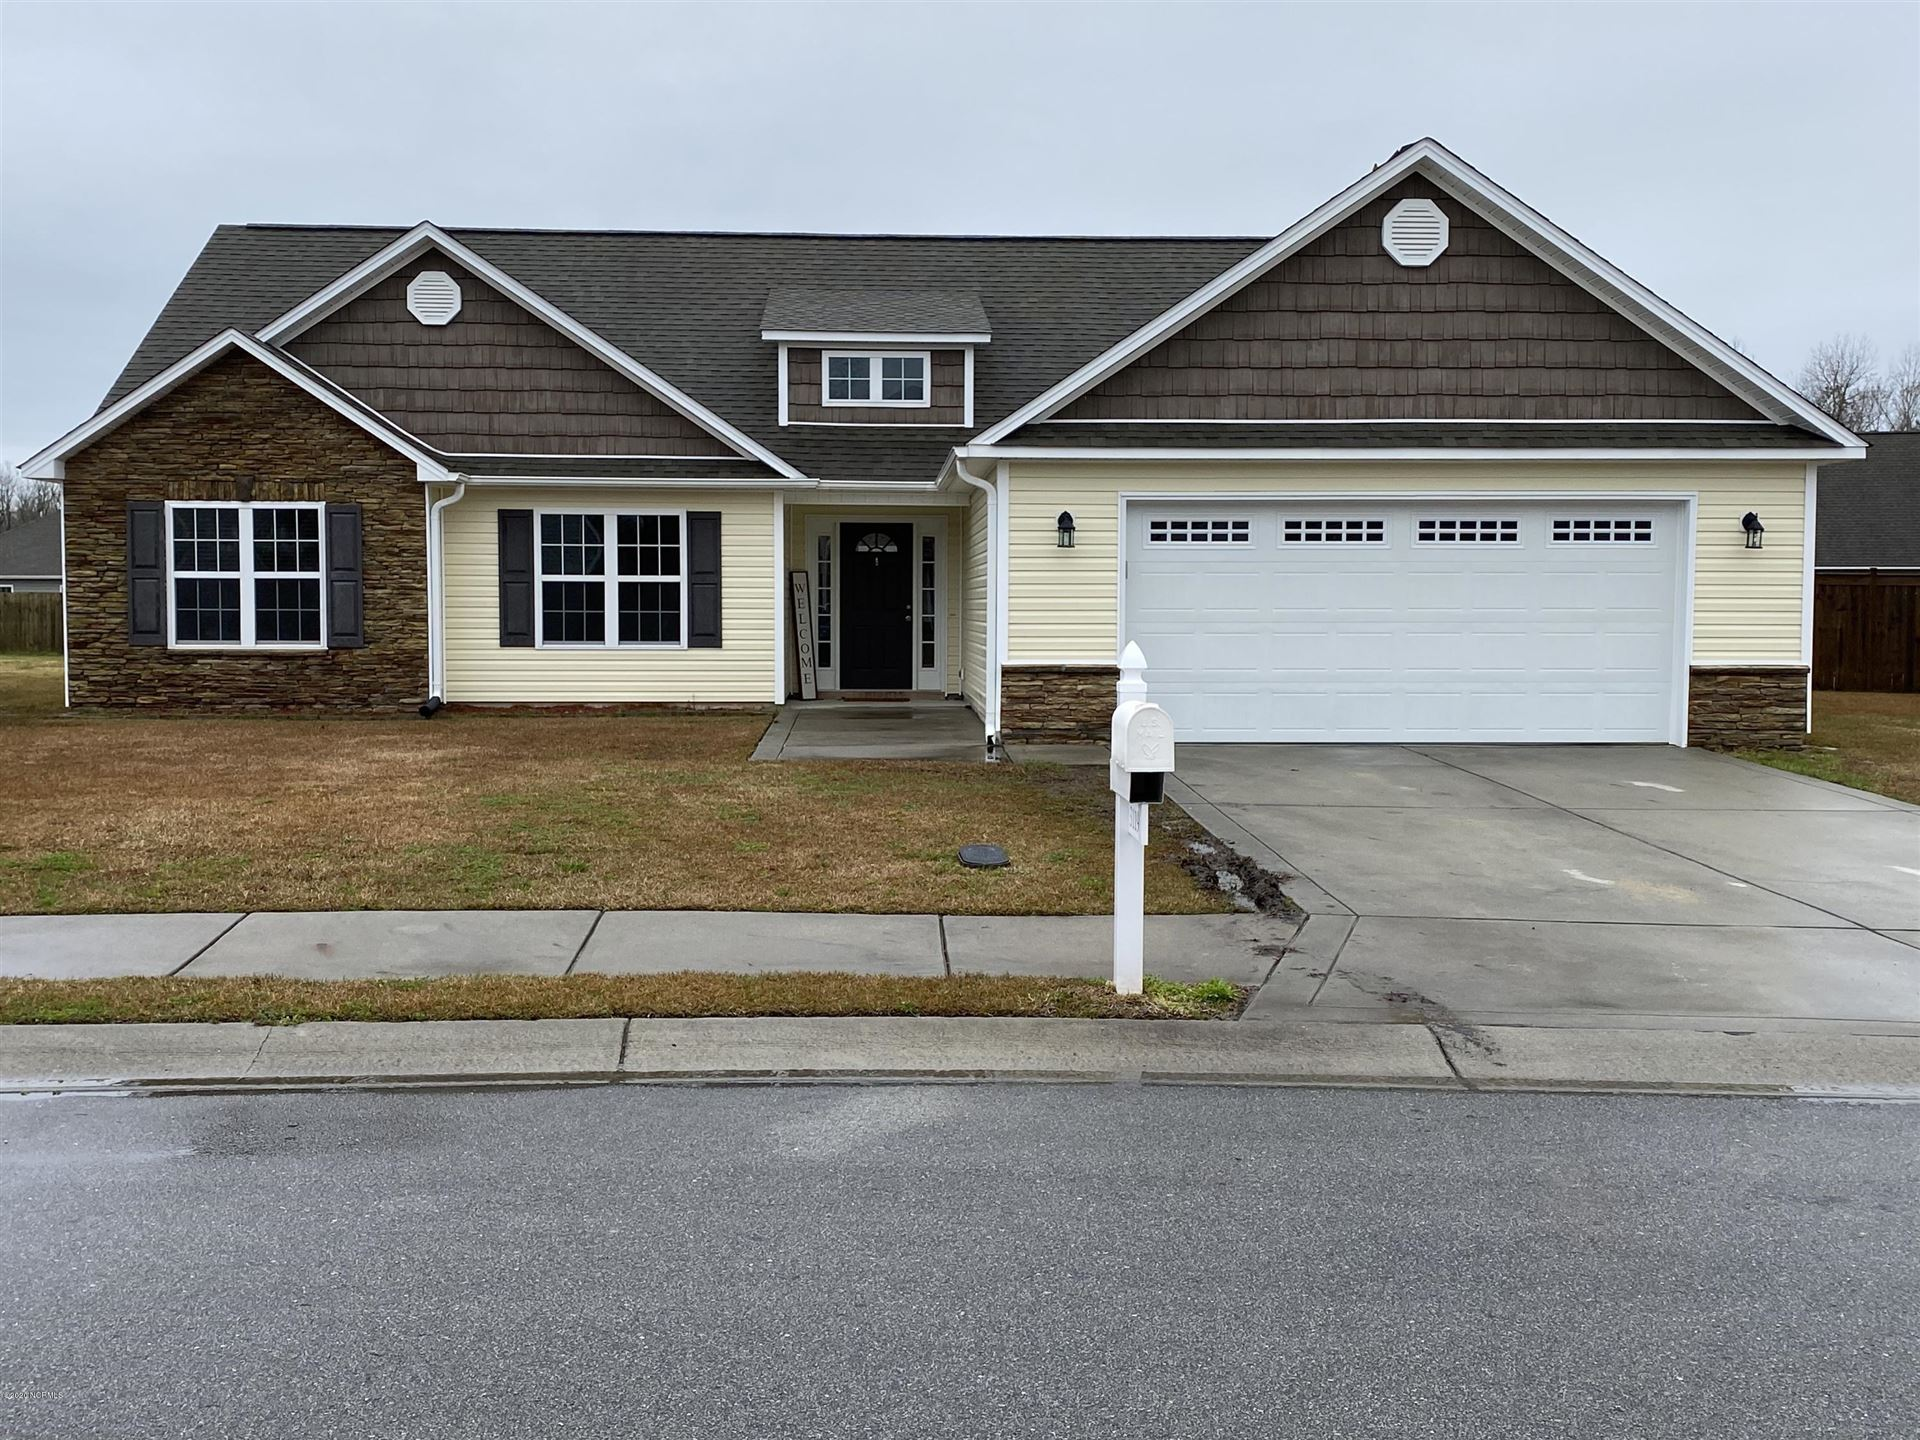 3119 Bettye Gresham Lane, New Bern, NC 28562 - #: 100205388